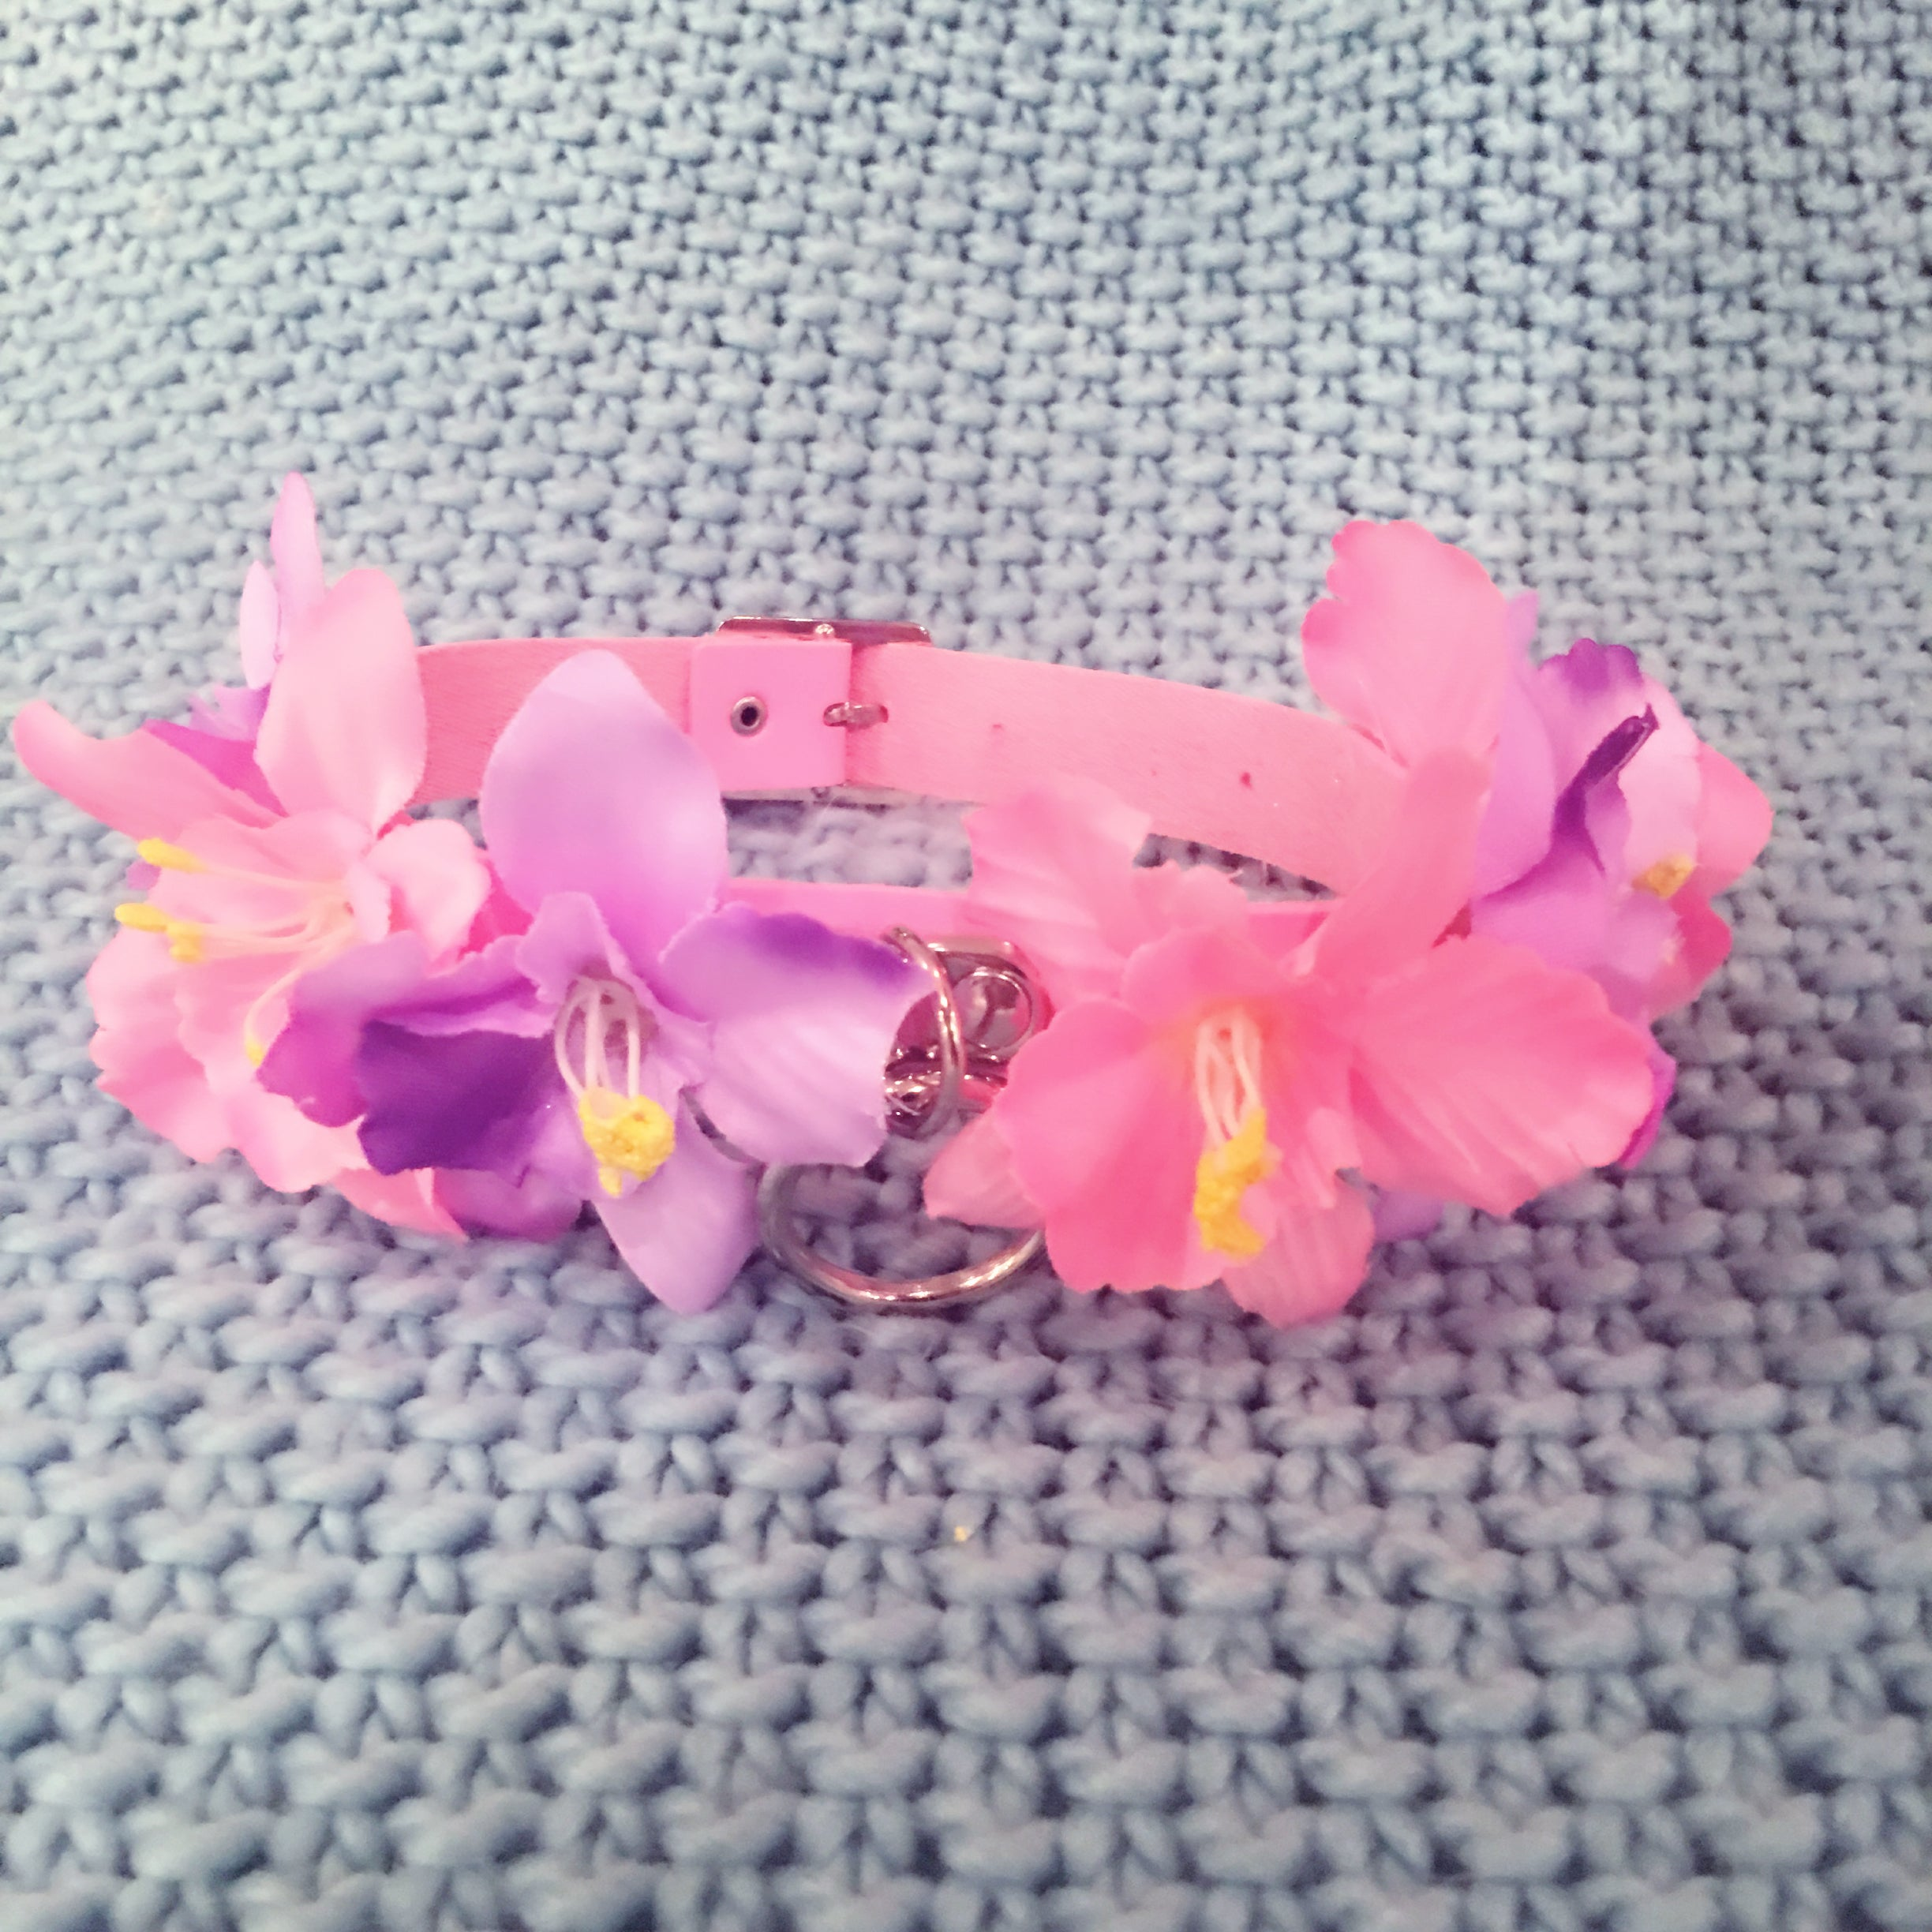 flower pink purple aesthetic choker collar necklace at BABYVOODOO.COM fashion pastel accessories